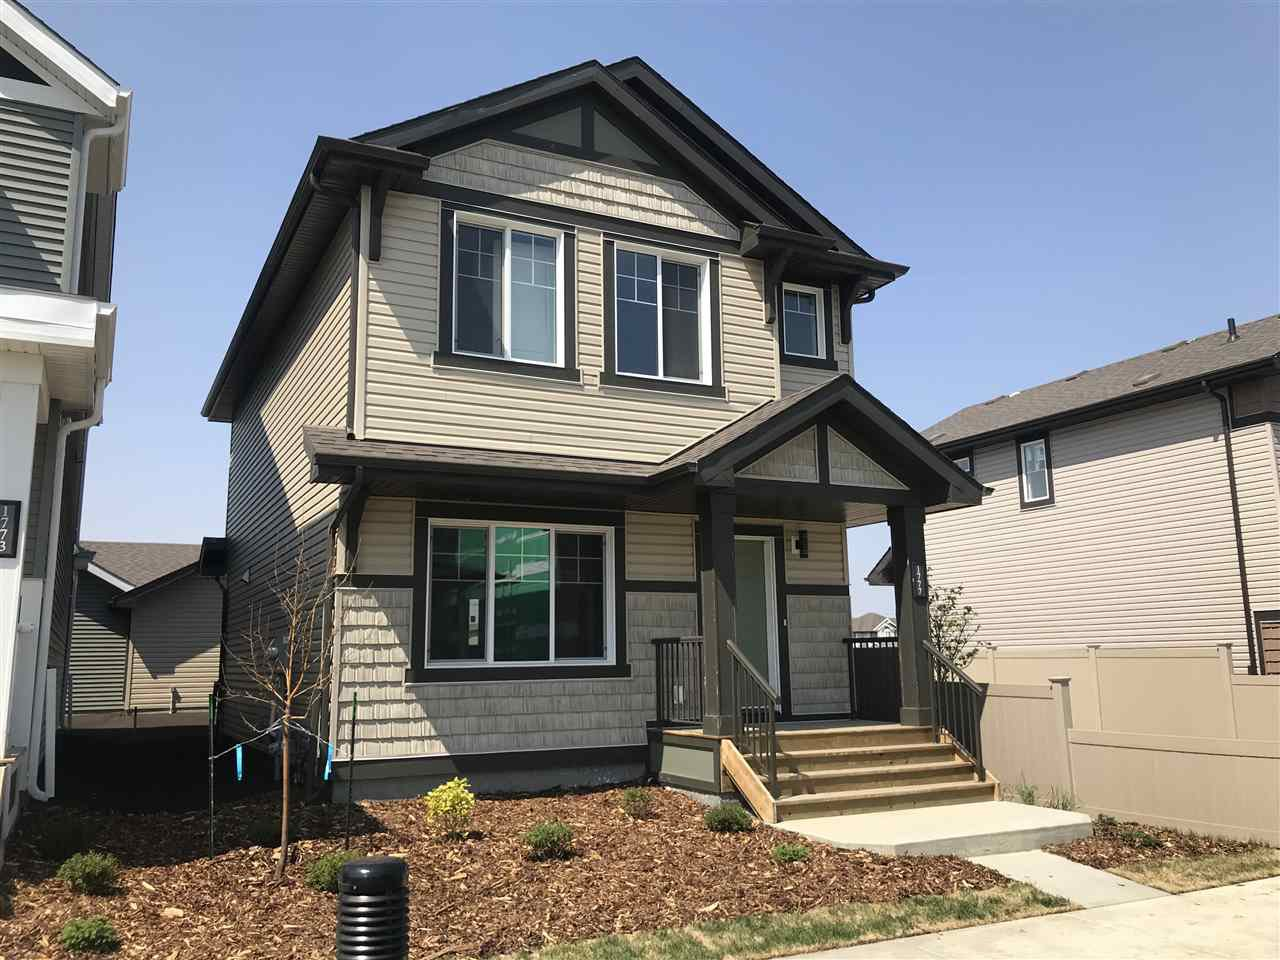 Main Photo: 1777 25A Street in Edmonton: Zone 30 House for sale : MLS®# E4172057